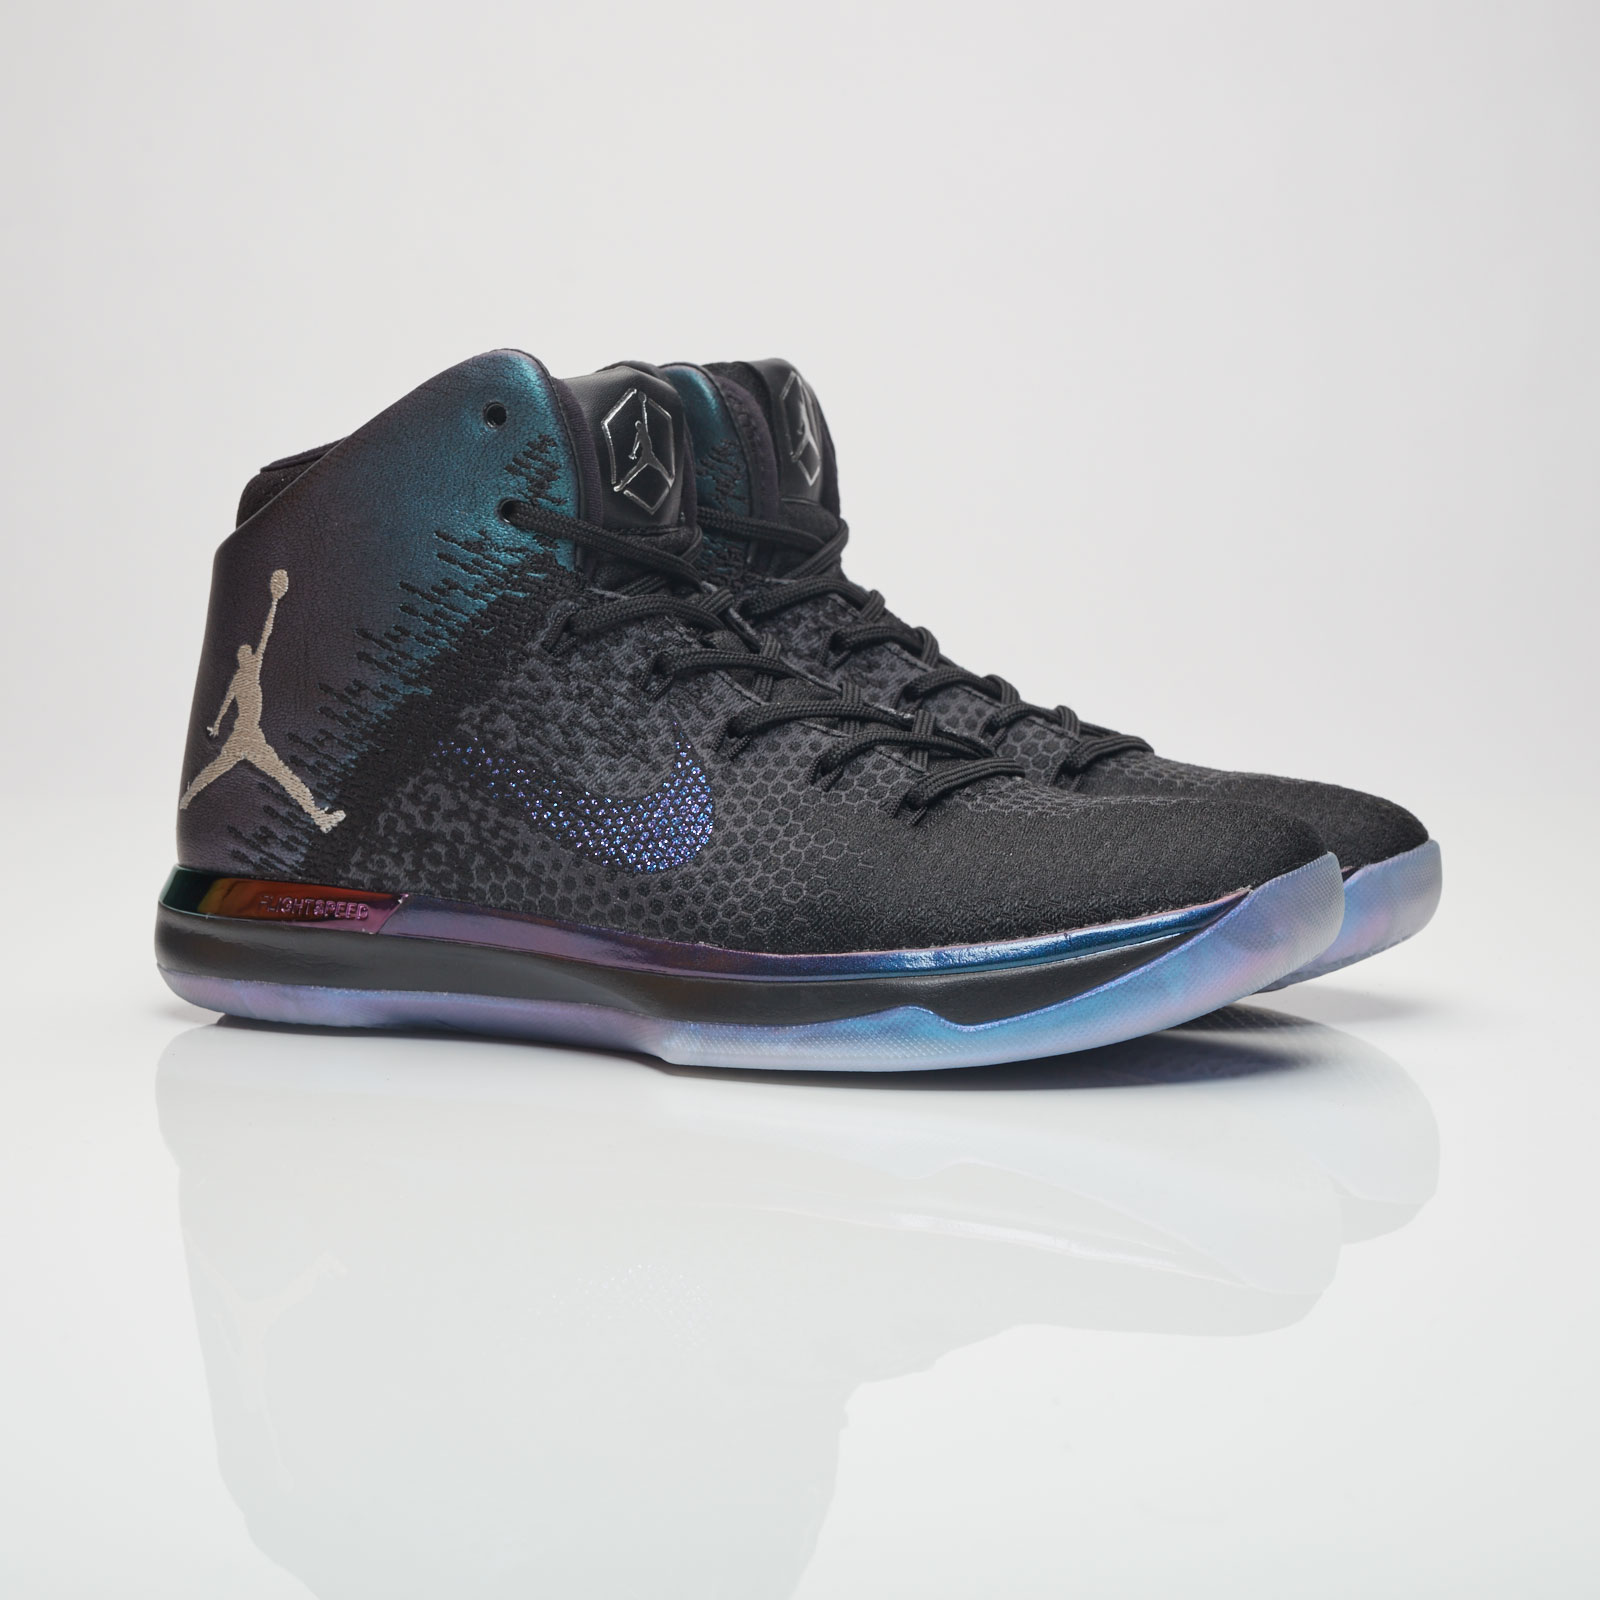 reputable site 8a1ef 6b4db jordan brand air jordan xxxi asw